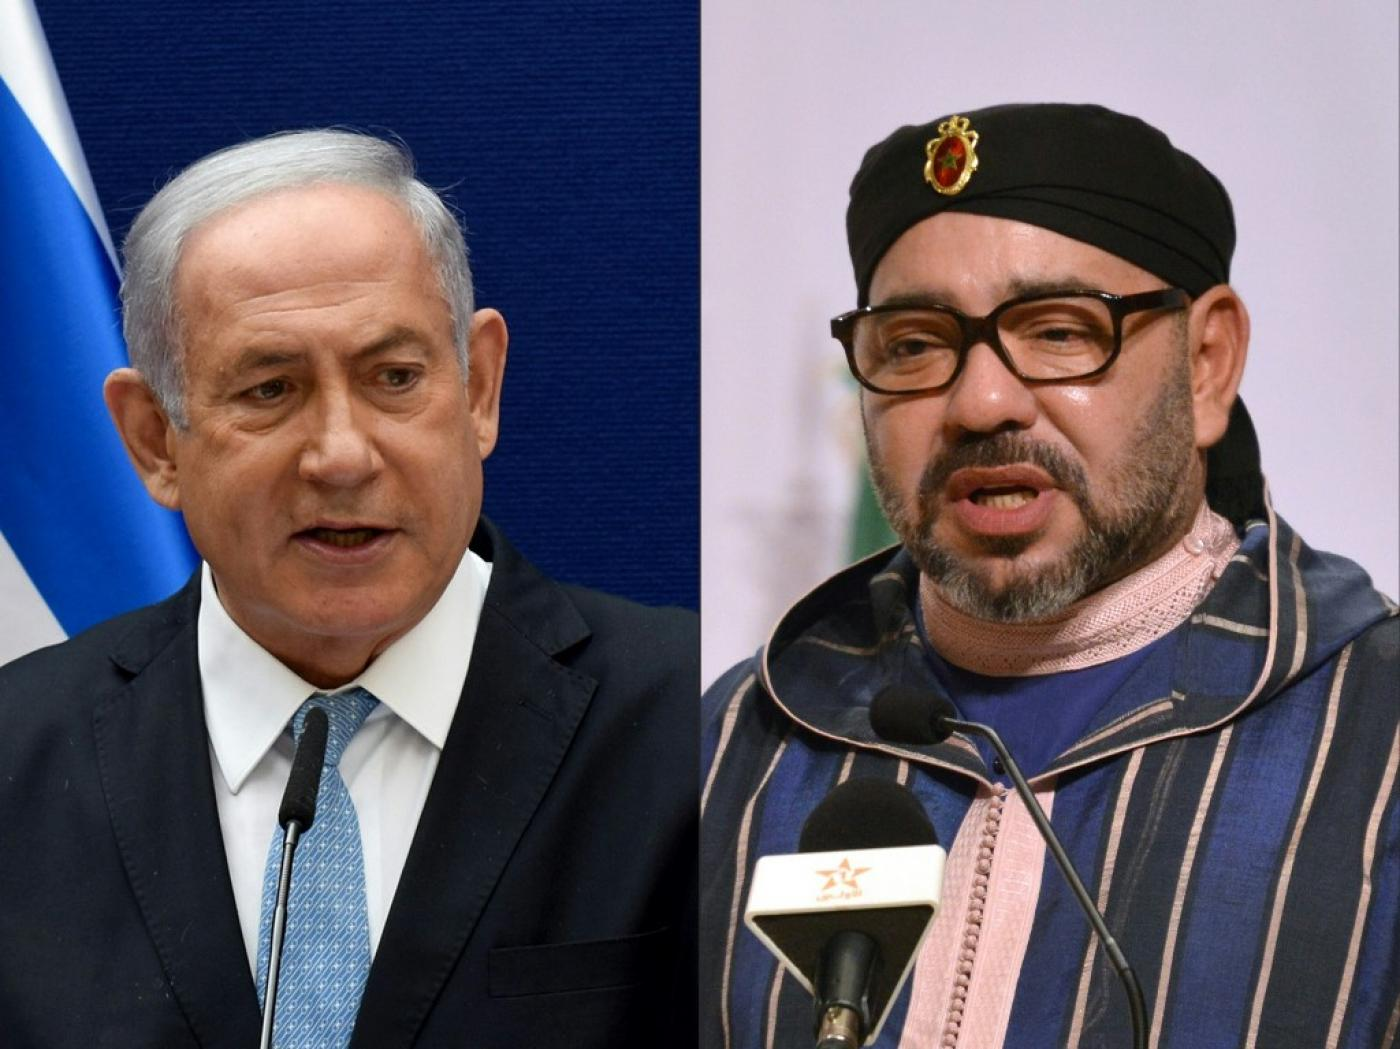 Prime Minister Benjamin Netanyahu and Morocco's King Mohammed VI spoke over the phone on Friday.